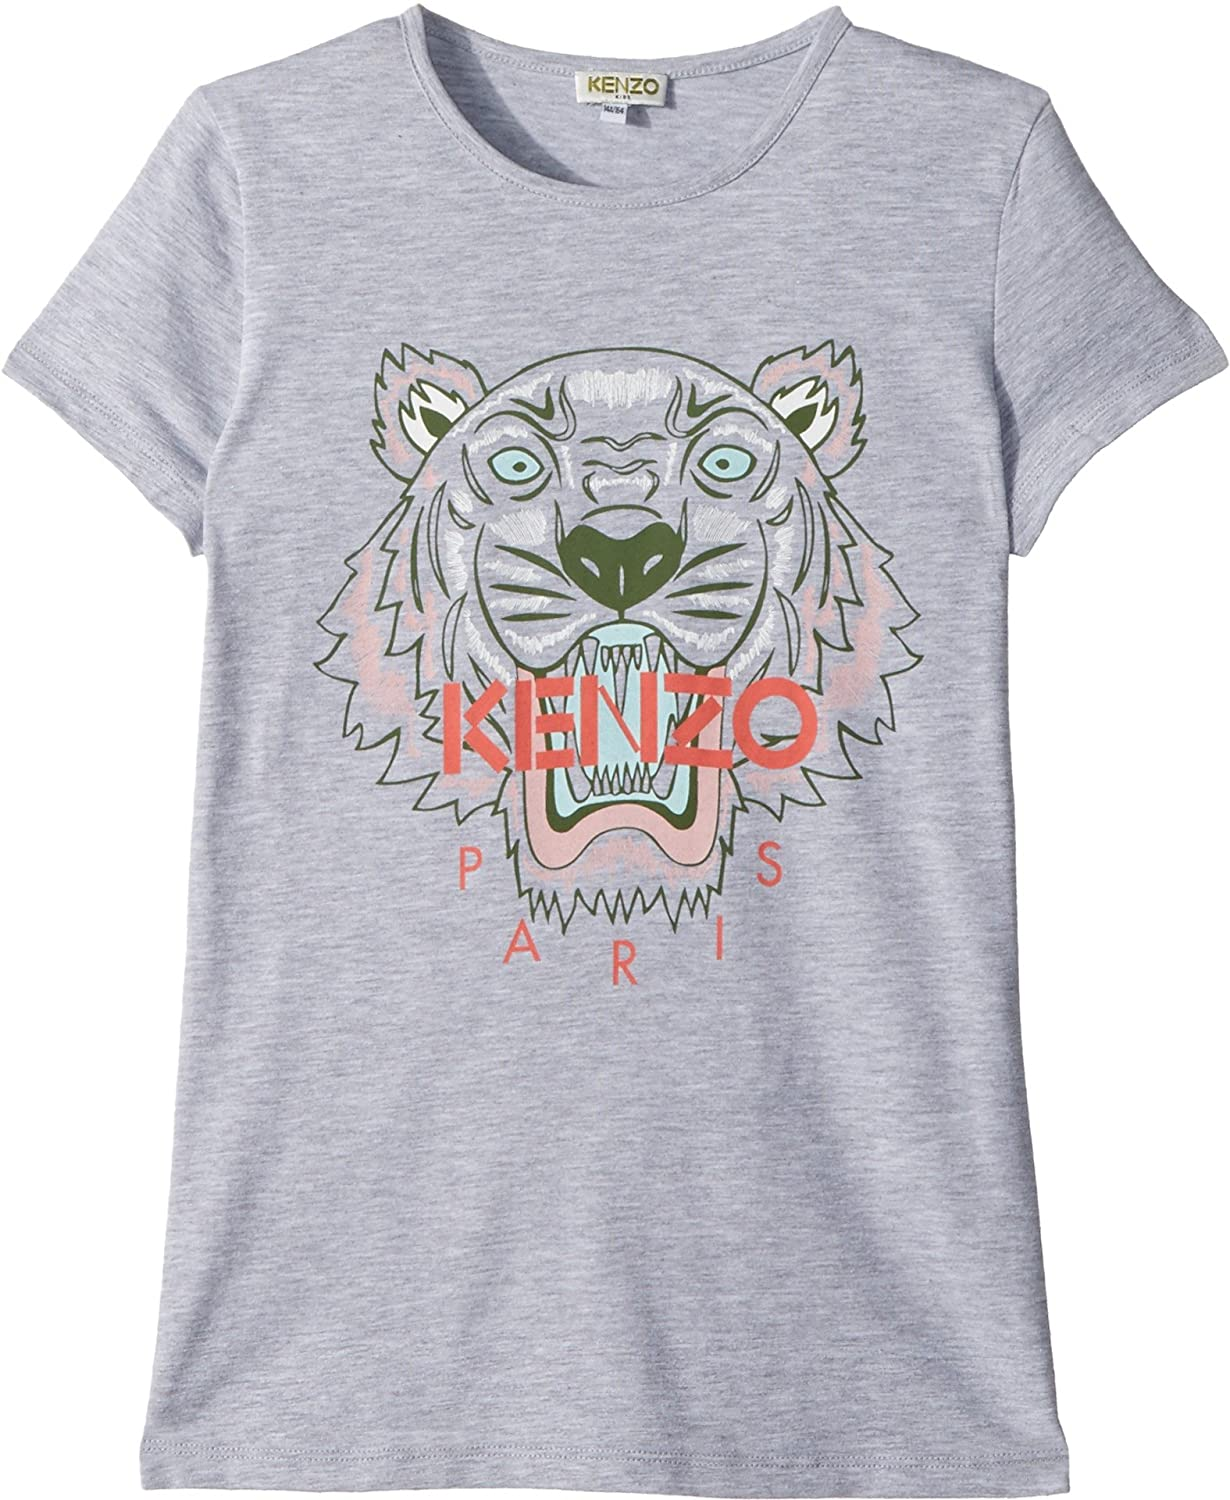 35d2ace2 Top6: Kenzo Kids Womens Tee Shirt Classic Tiger (Toddler/Little Kids)